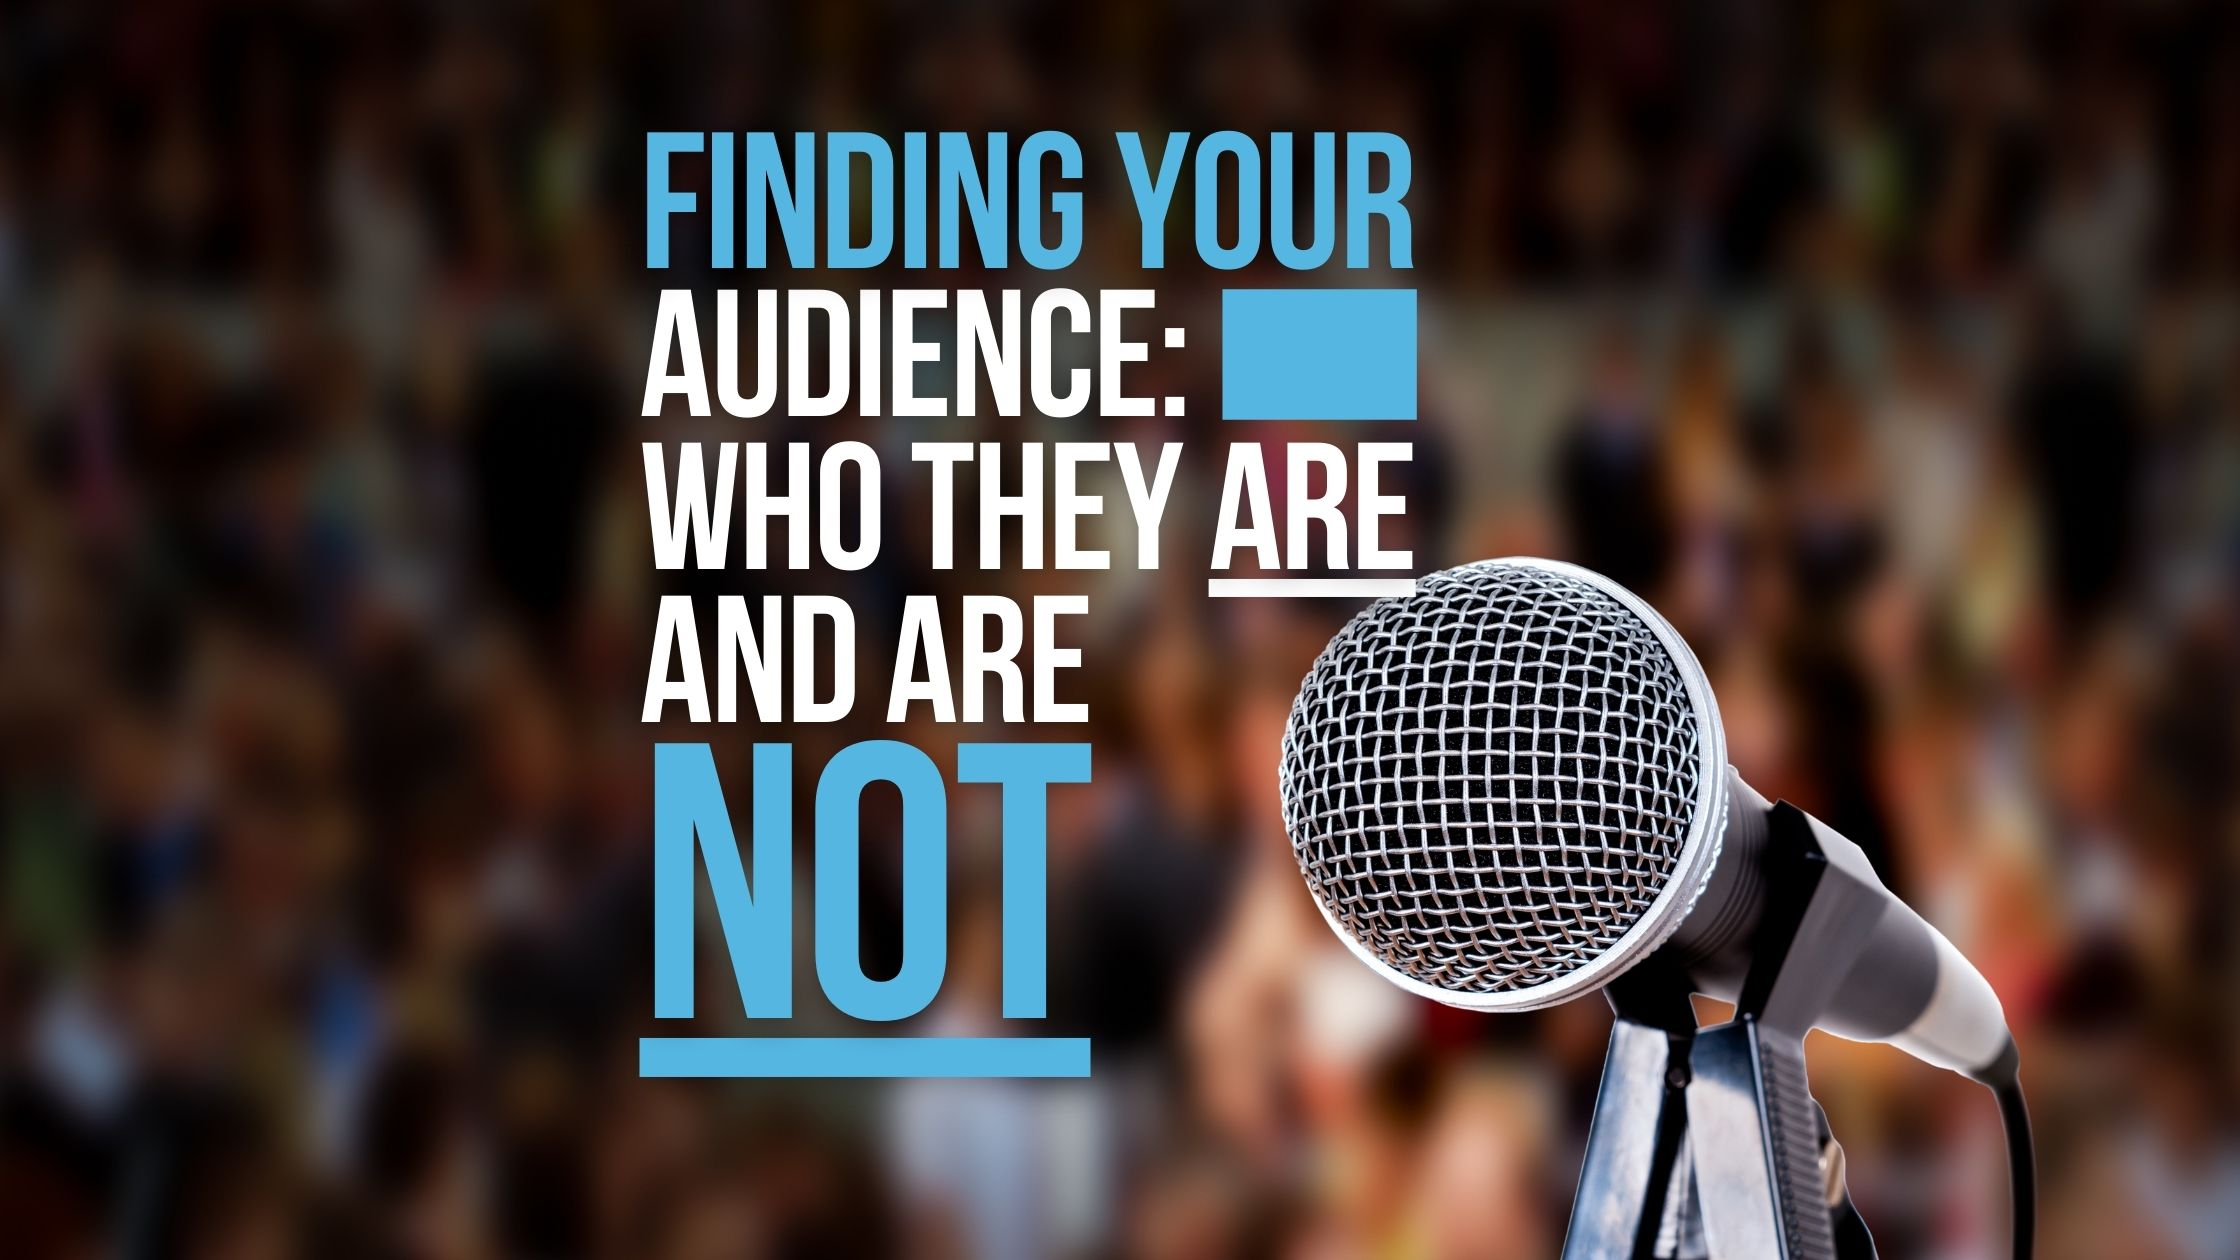 Finding Your Audience: Who They Are and Are Not